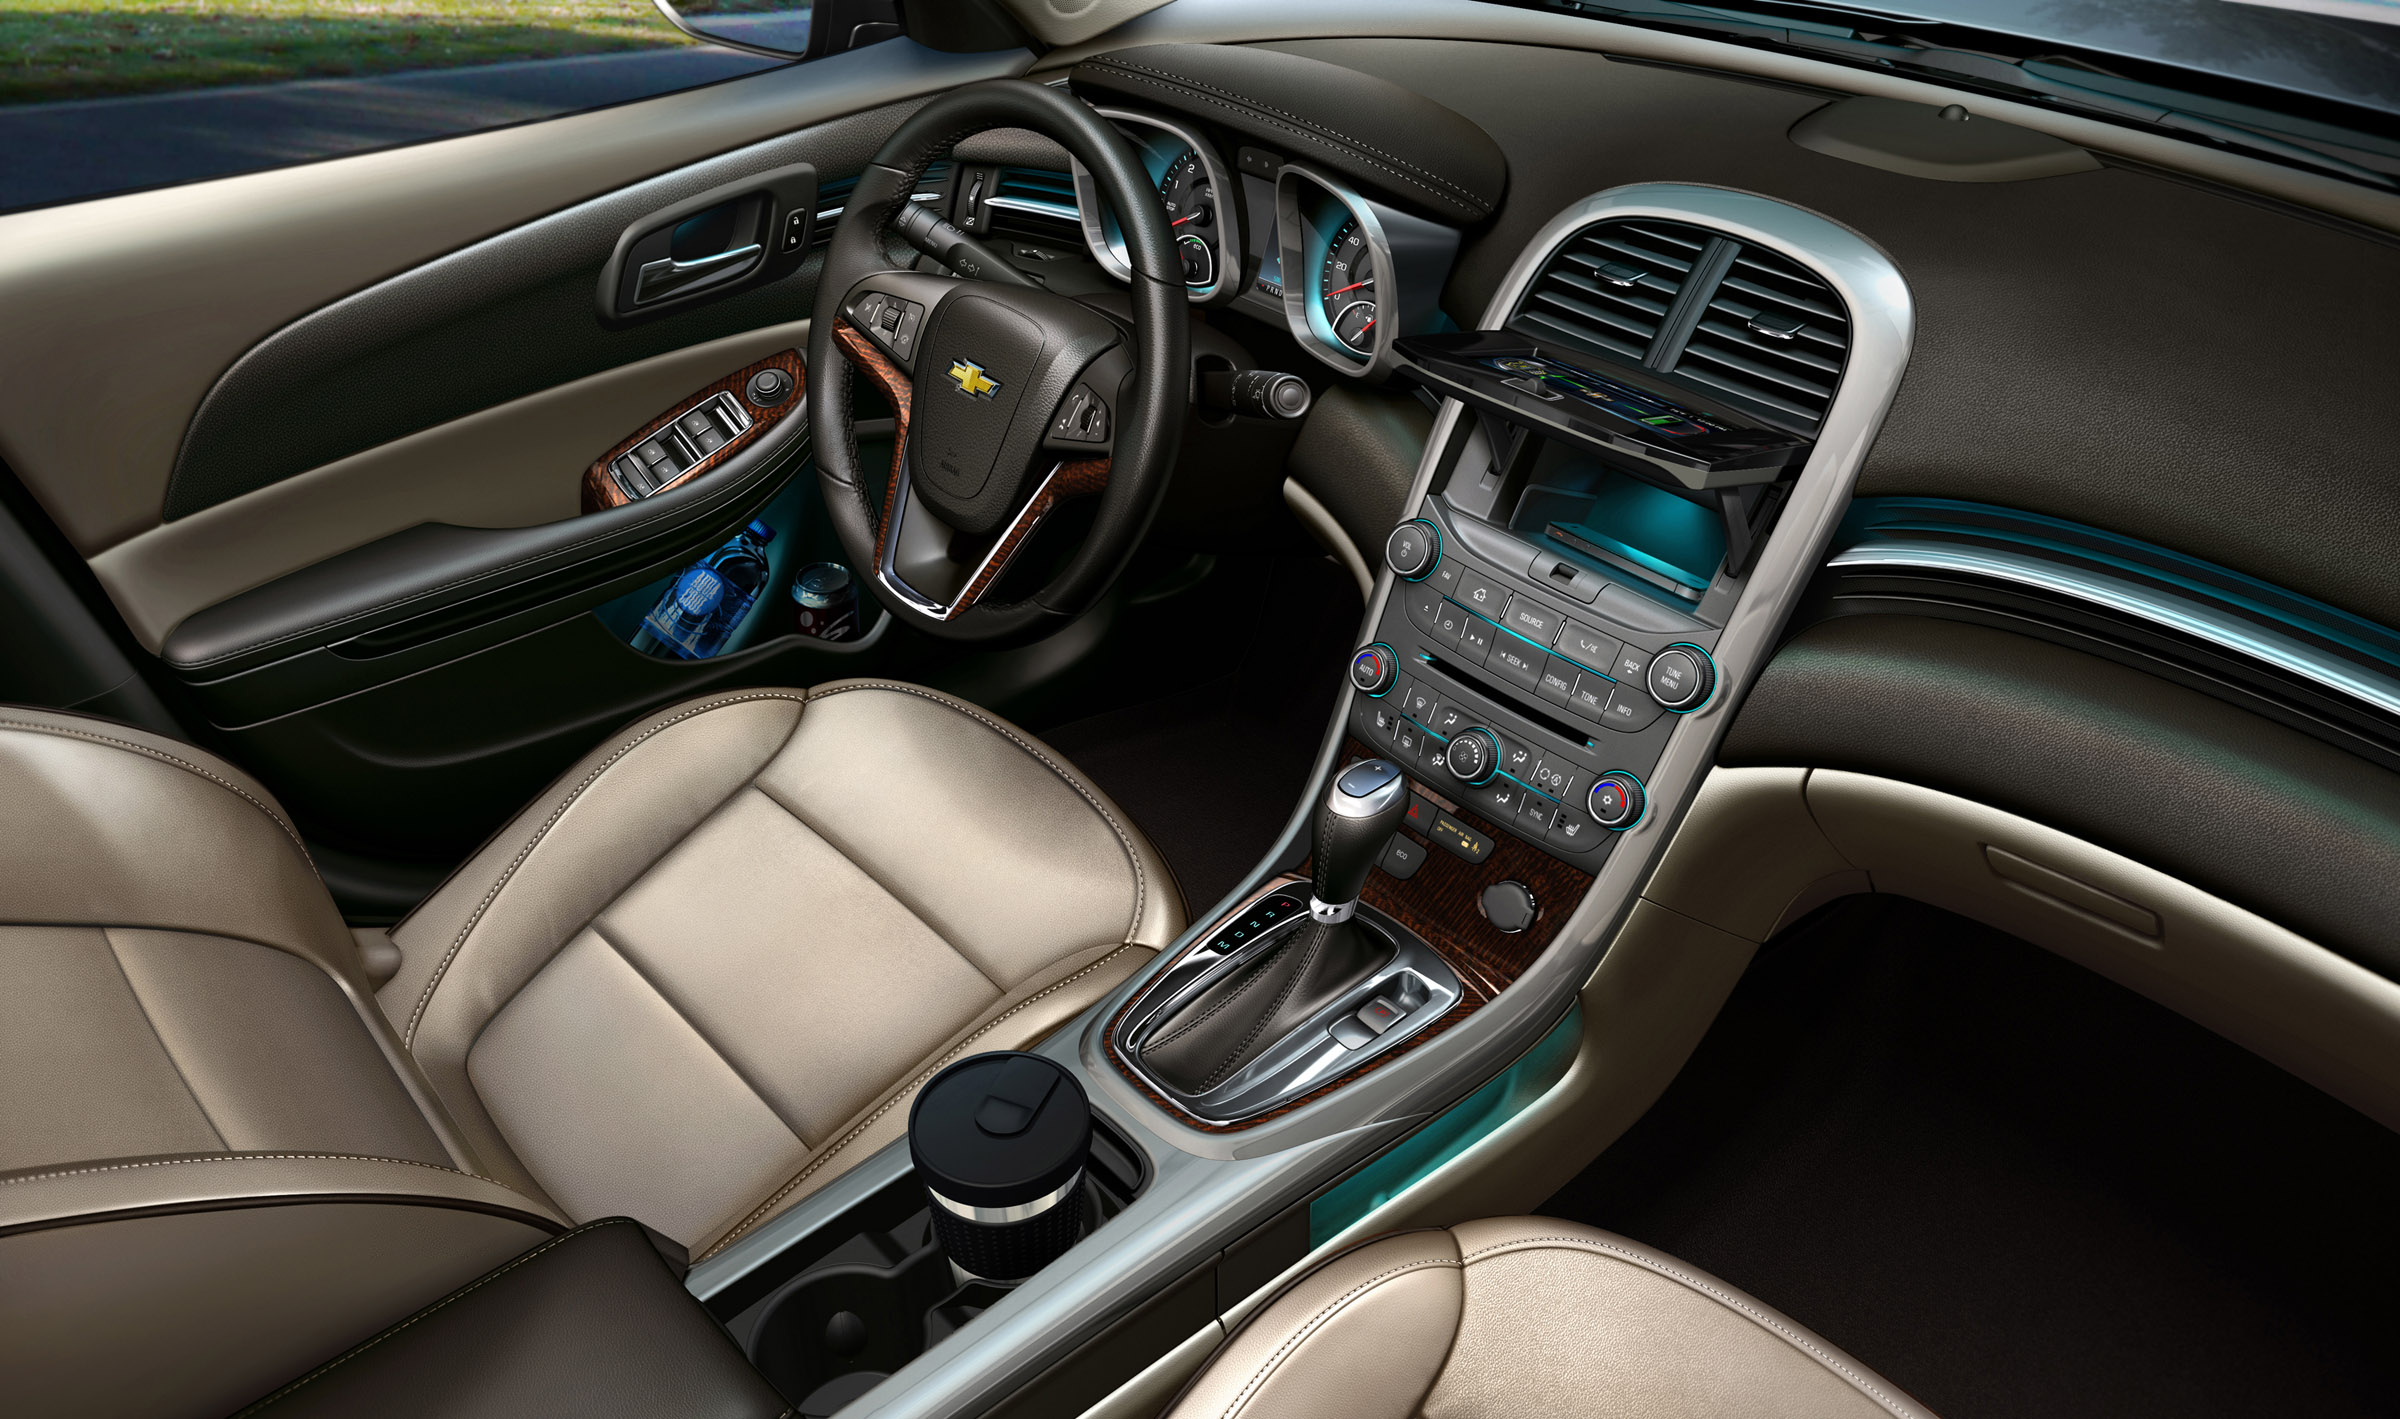 malibu chevrolet eco chevy interior auto mpg global cartype reveals korea sell going build south siliconeer september electric gas mileage